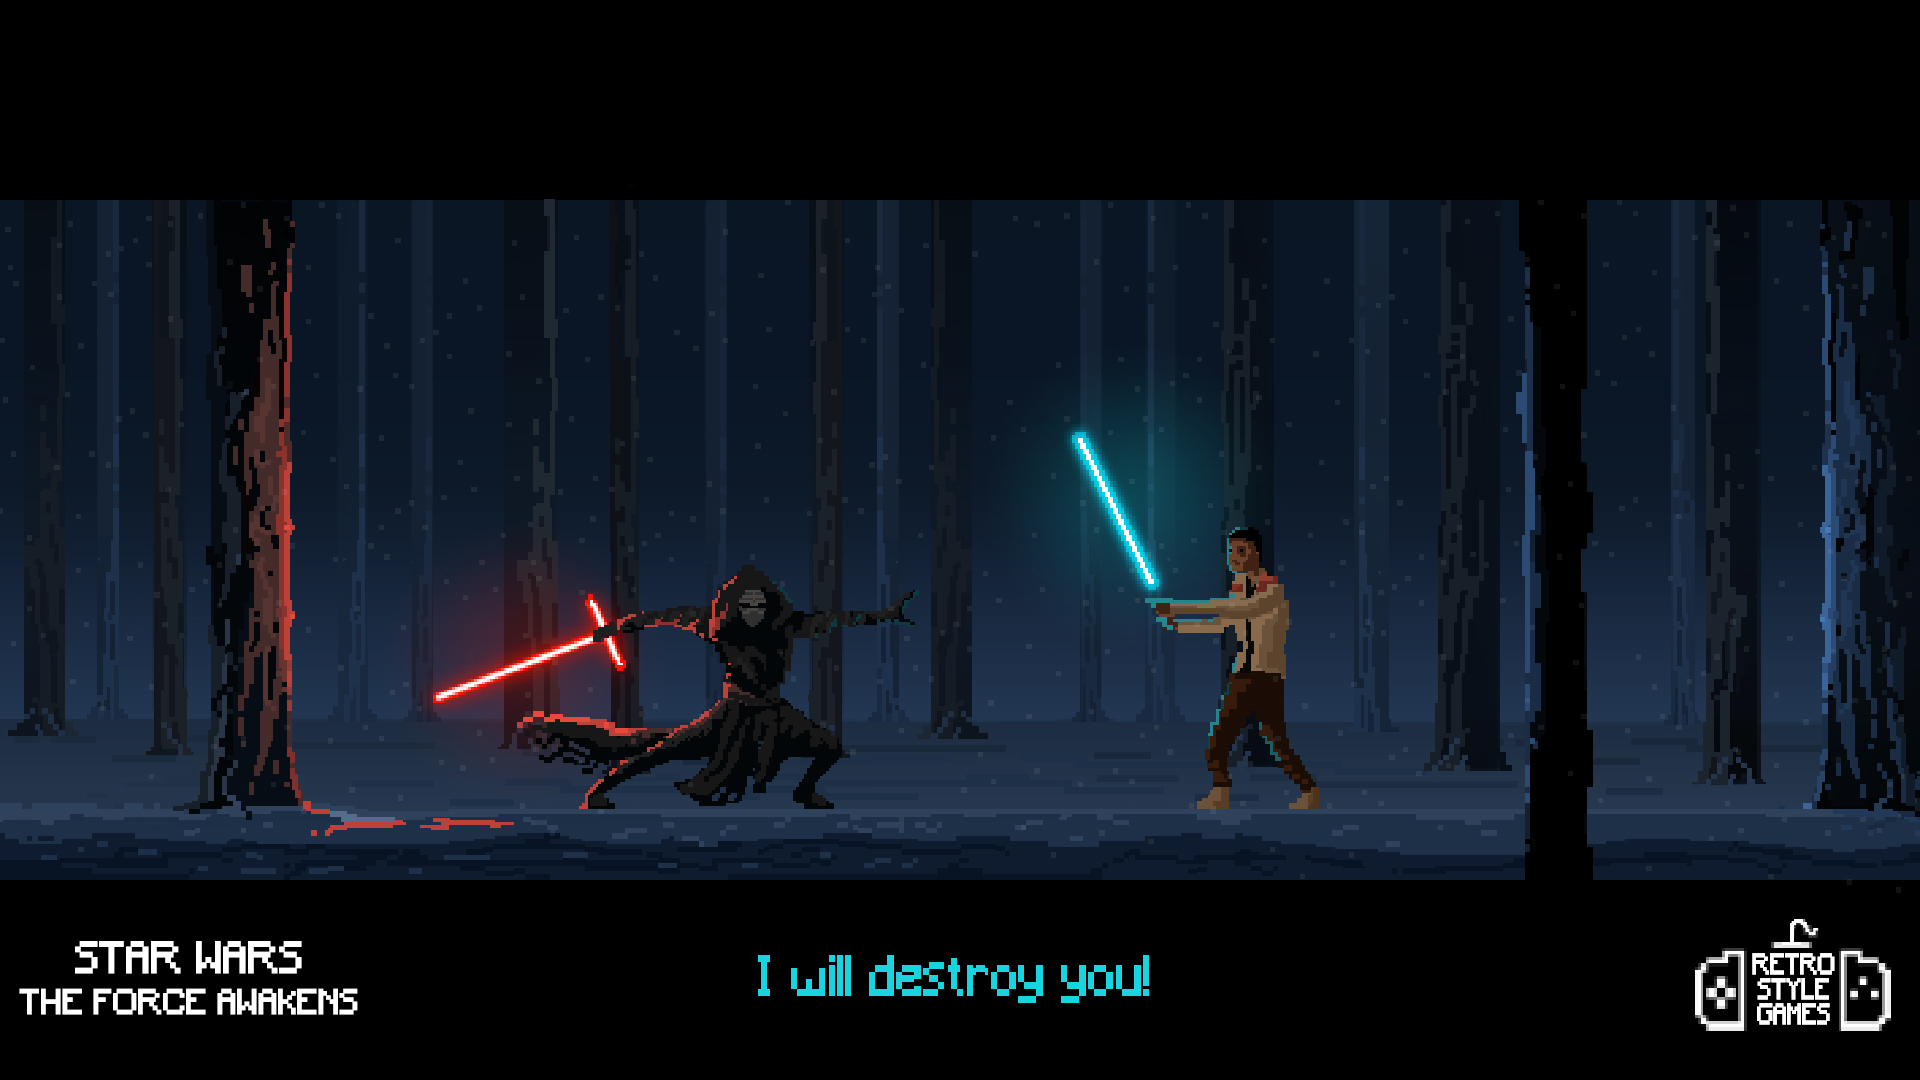 03-StarWars-Kylo-Ren-Finn-forest-fight-pixel-art